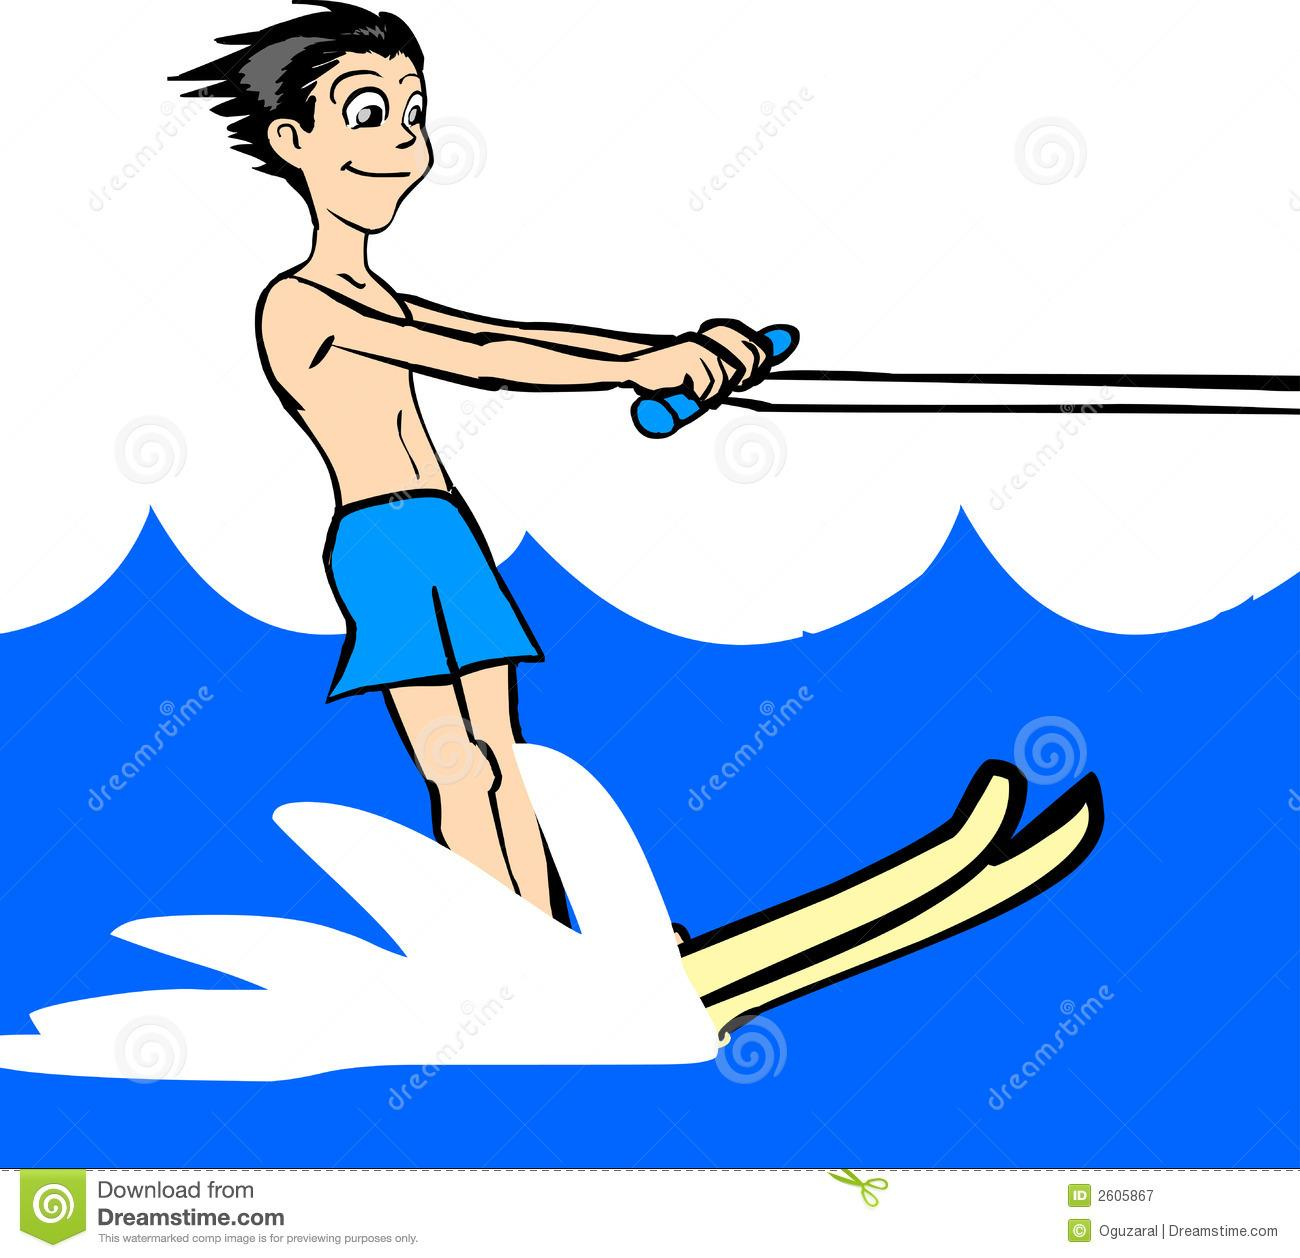 Water skiing clipart images.